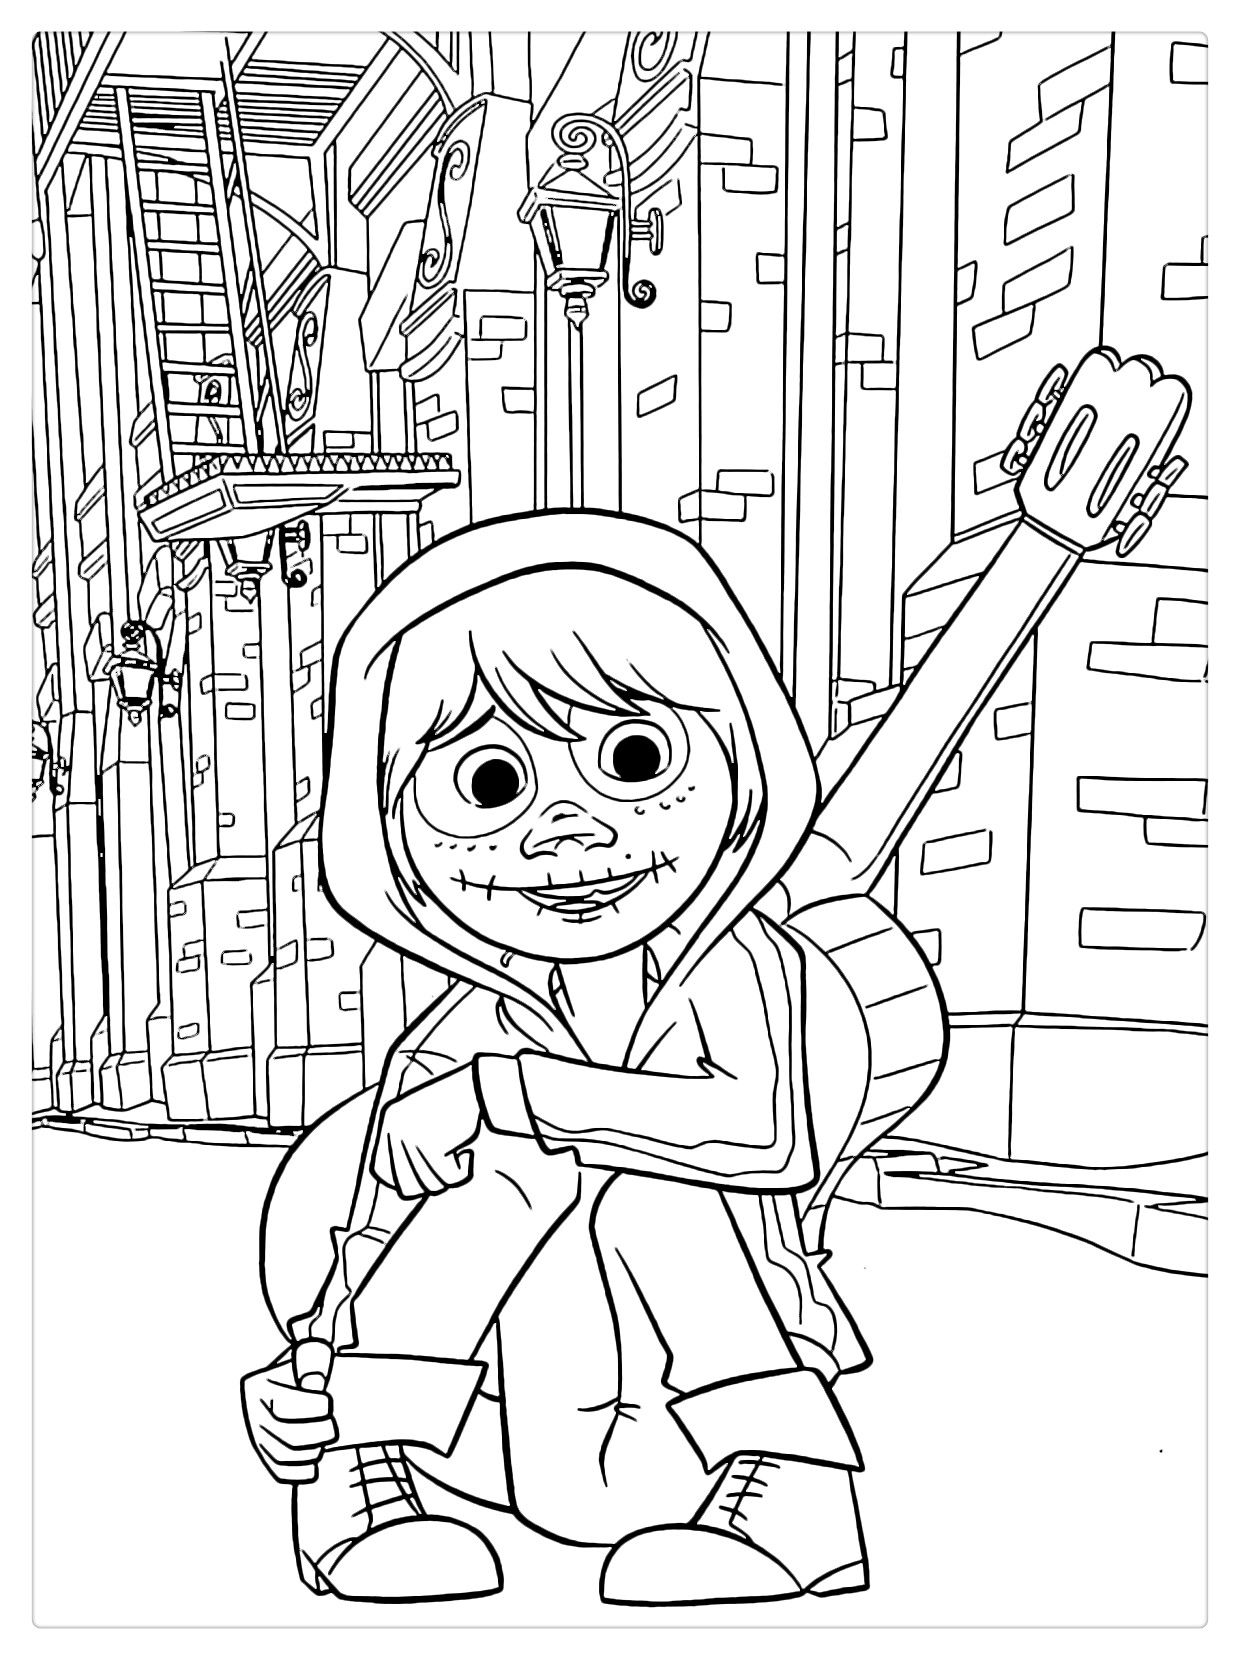 Coco Coloring Pages Cartoon Coloring Pages Disney Coloring